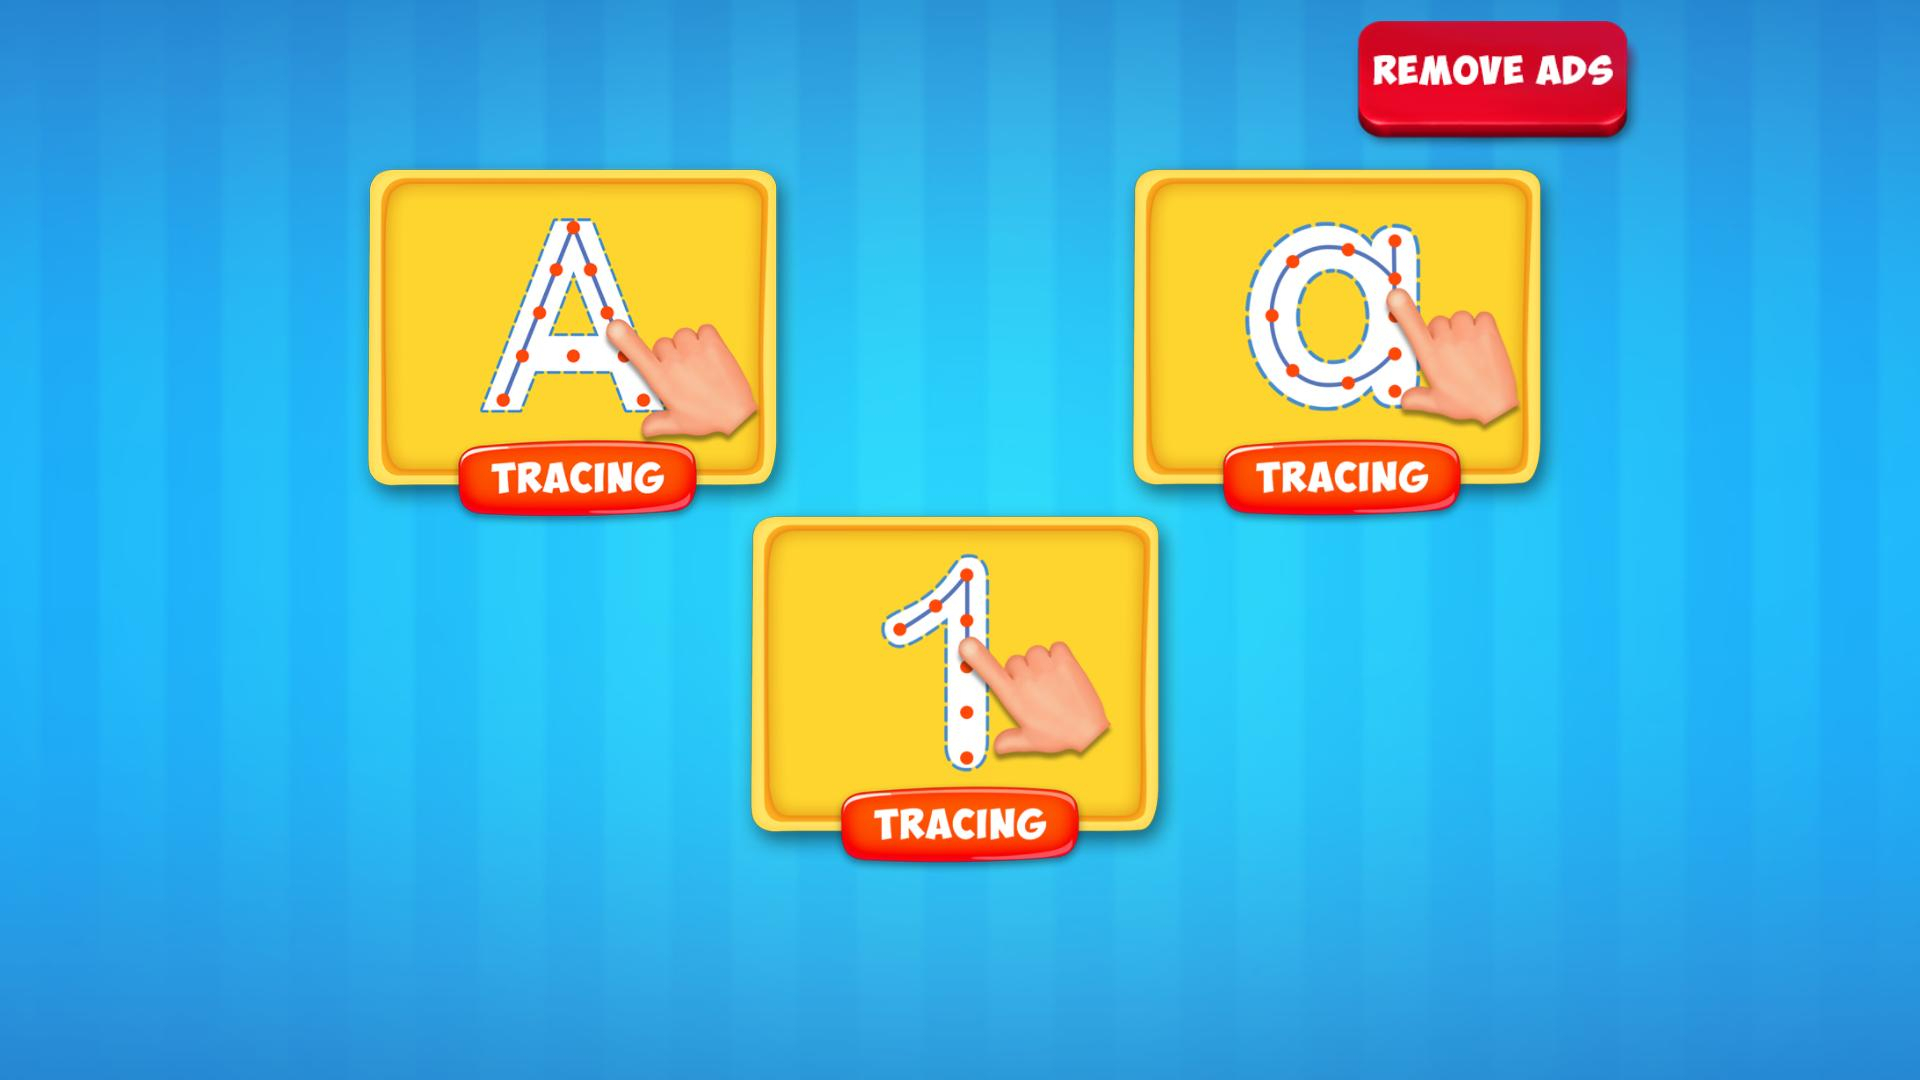 Abc Alphabet Tracing For Android - Apk Download throughout Alphabet Tracing App Free